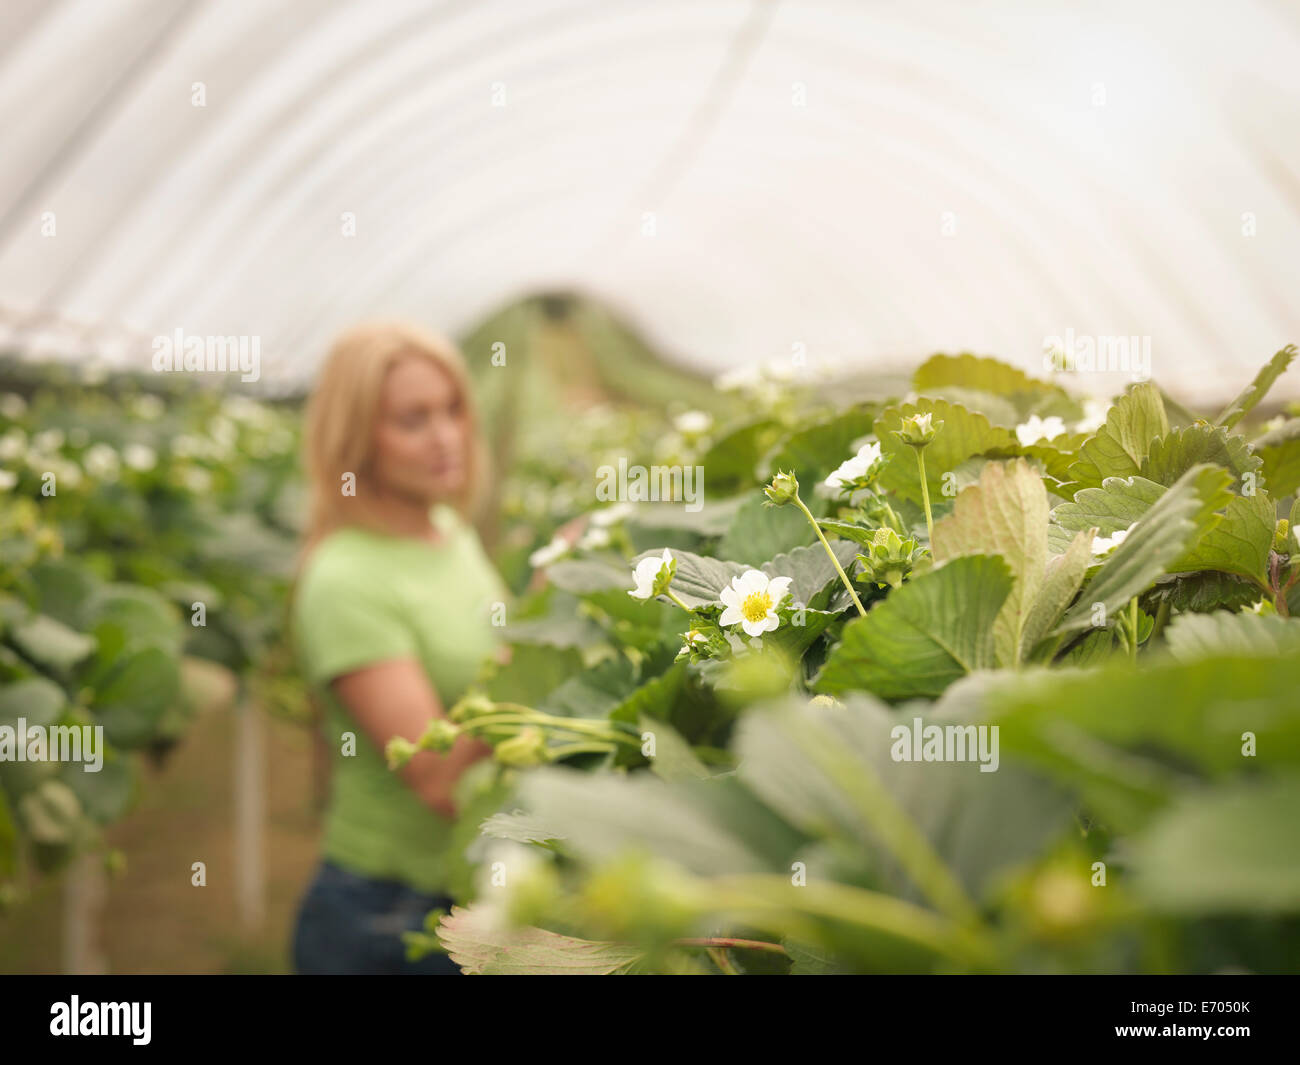 Worker checking strawberry plants in polytunnel on fruit farm - Stock Image